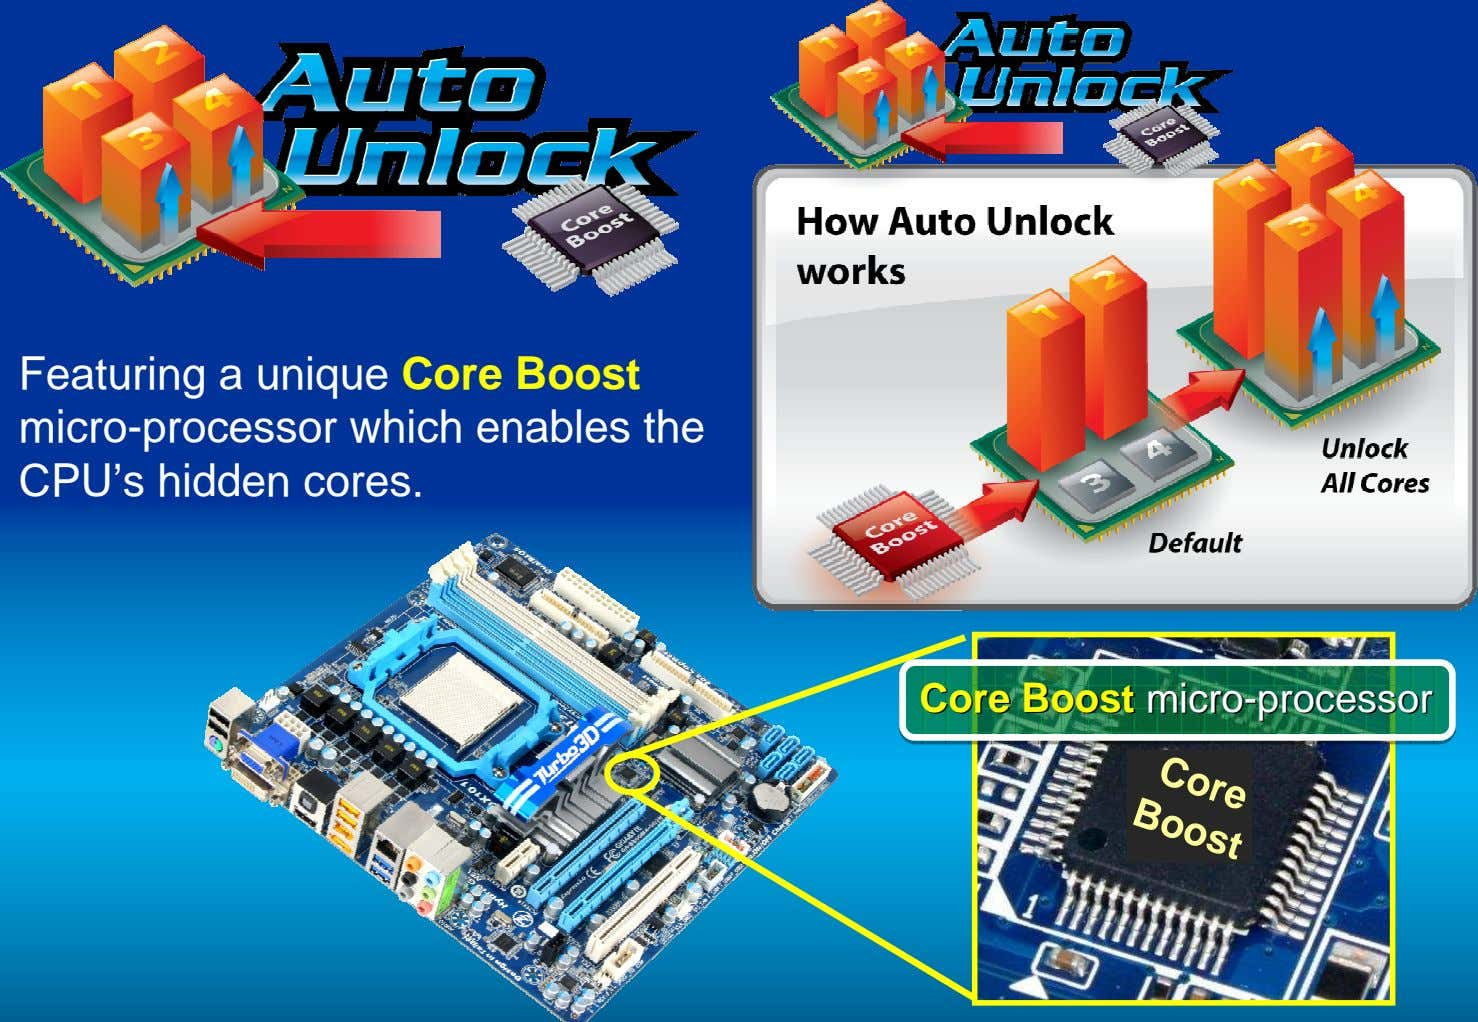 Featuring a unique Core Boost micro-processor which enables the CPU's hidden cores. Core Boost CoreCore